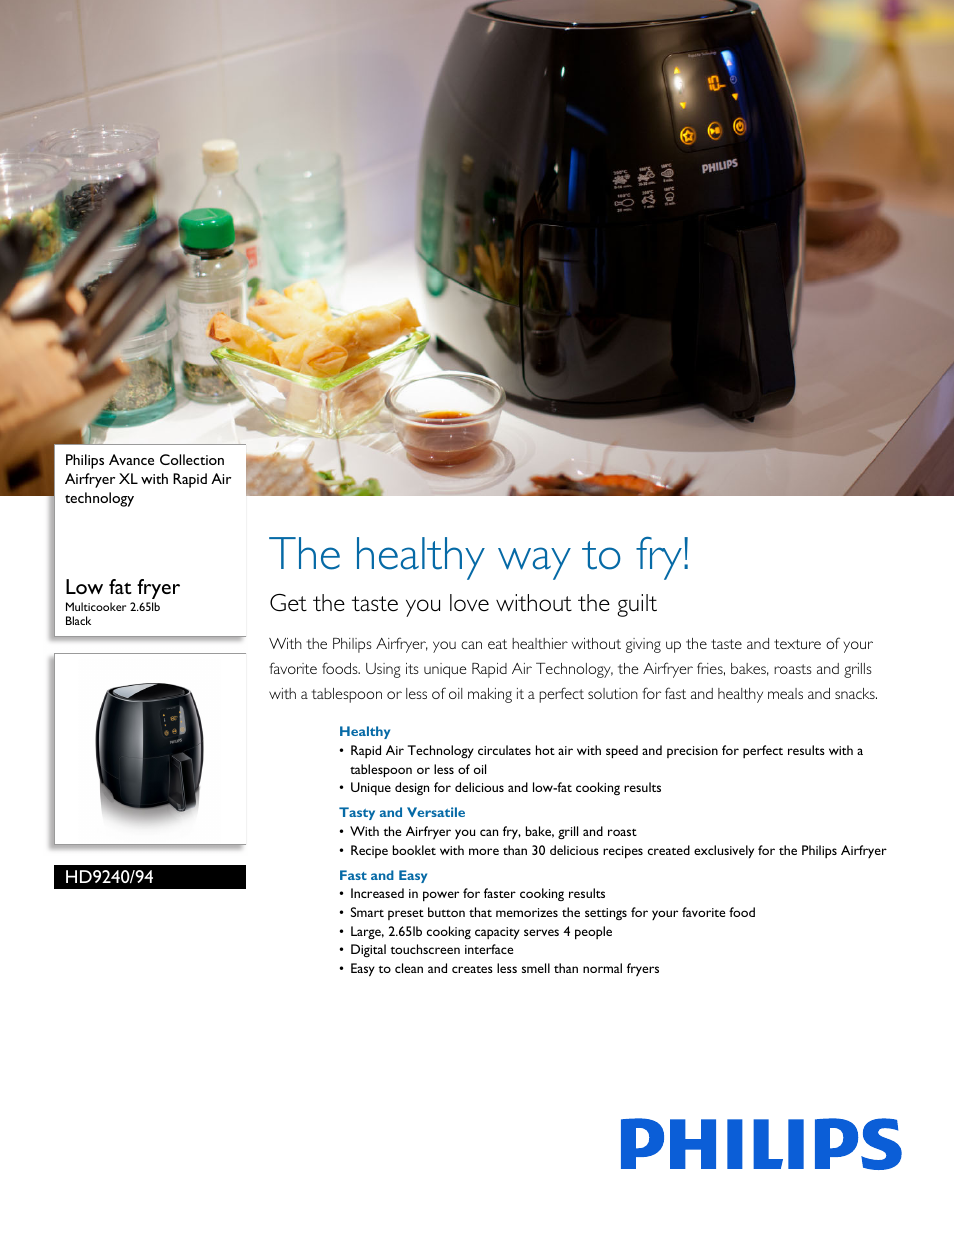 philips avance collection airfryer xl hd9240 94 low fat fryer rh manualsdir com philips airfryer hd9220 user manual philips airfryer hd9220 user manual